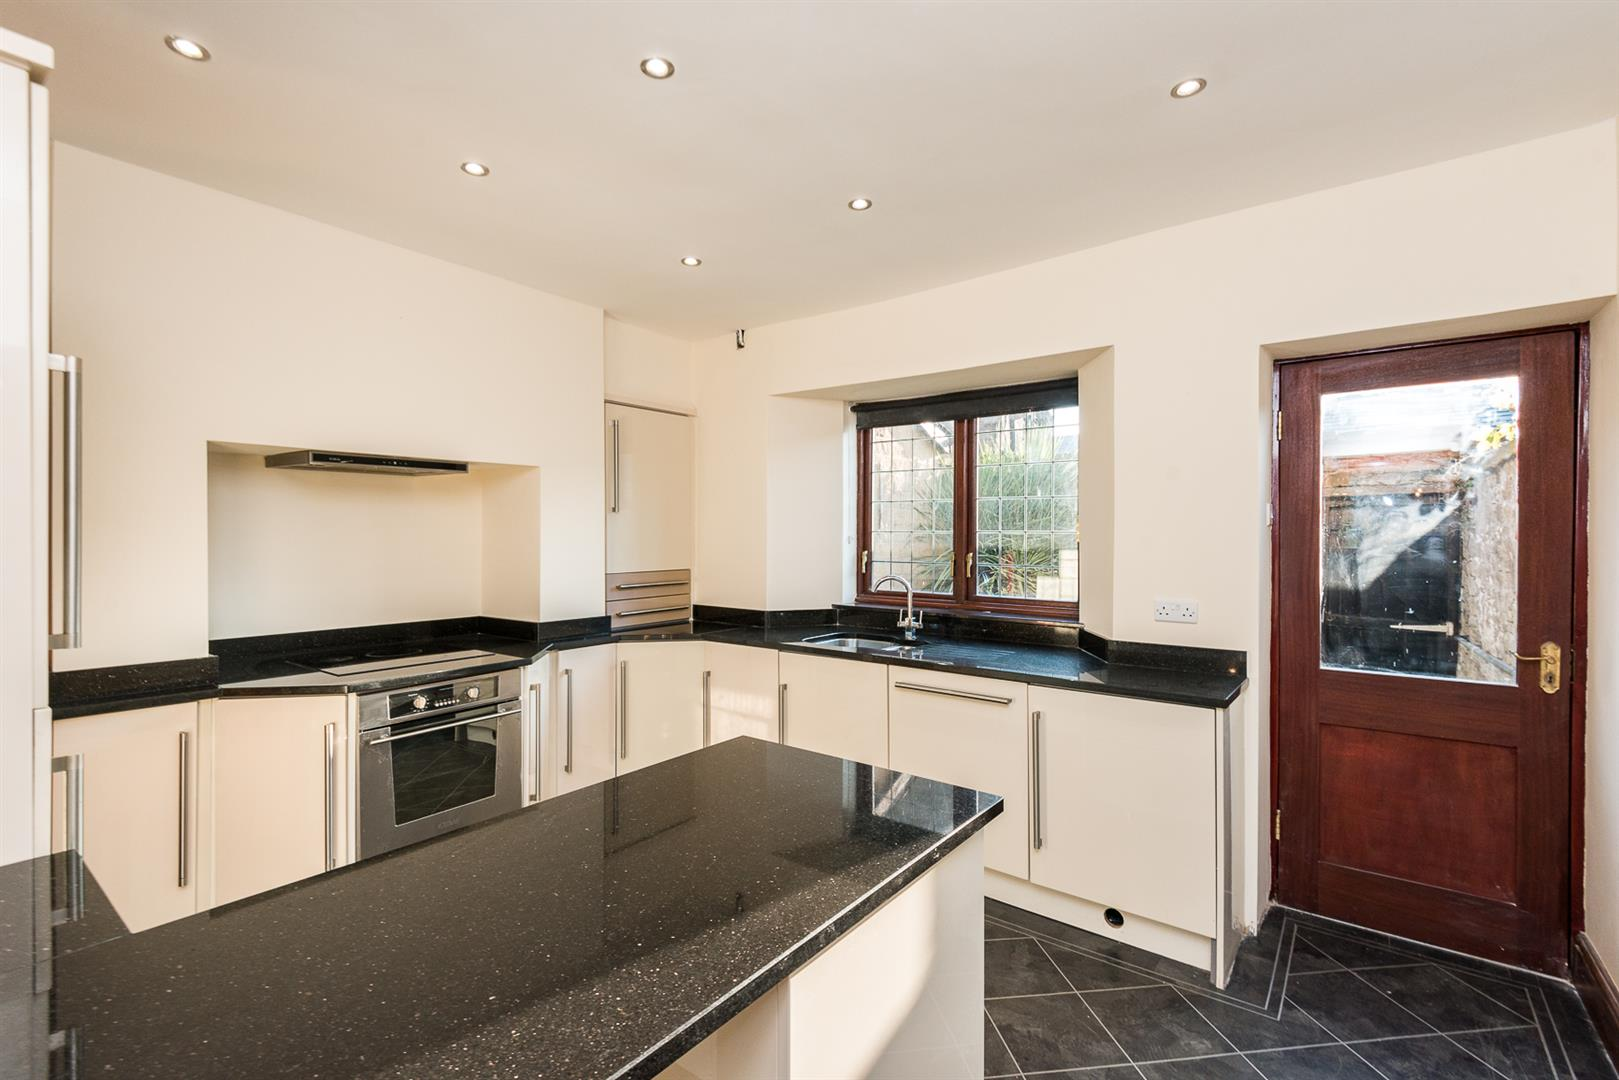 2 Bedroom House Sale Agreed Image 4